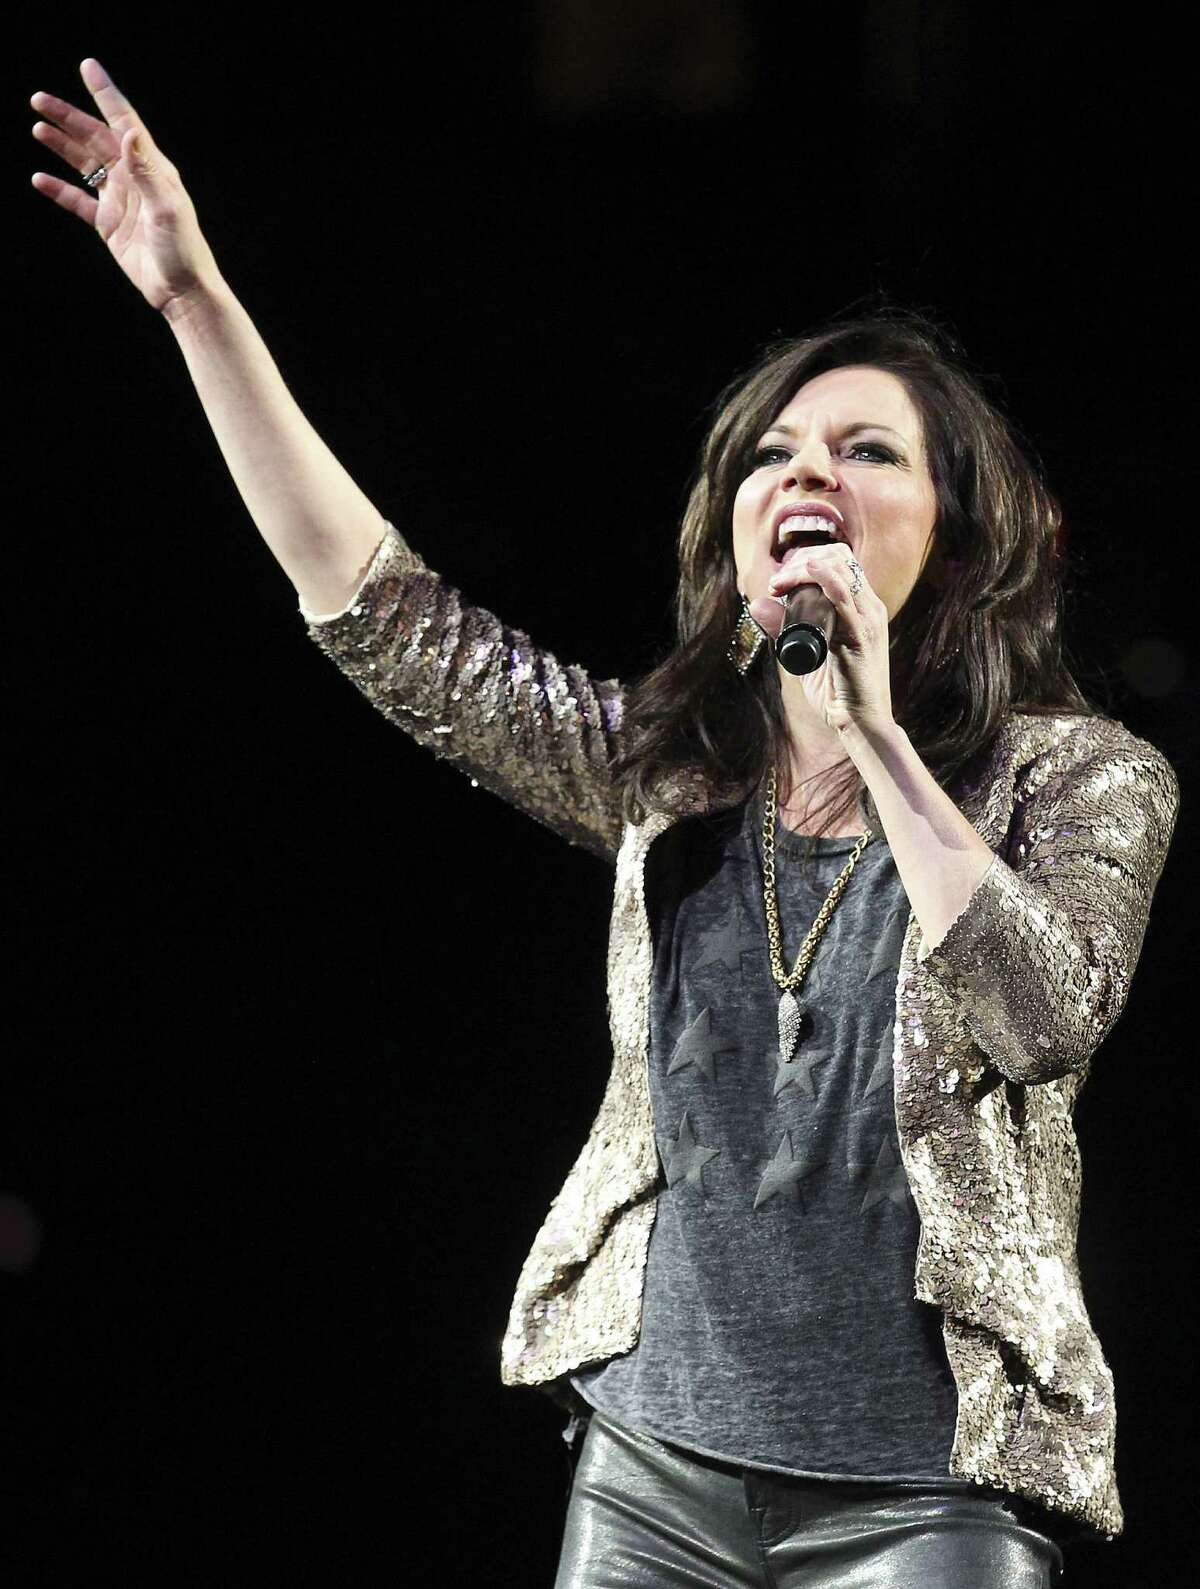 Singer Martina McBride brings her country sound to downtown Albany. When: 8:00 p.m. Where: Palace Theatre. Learn more.